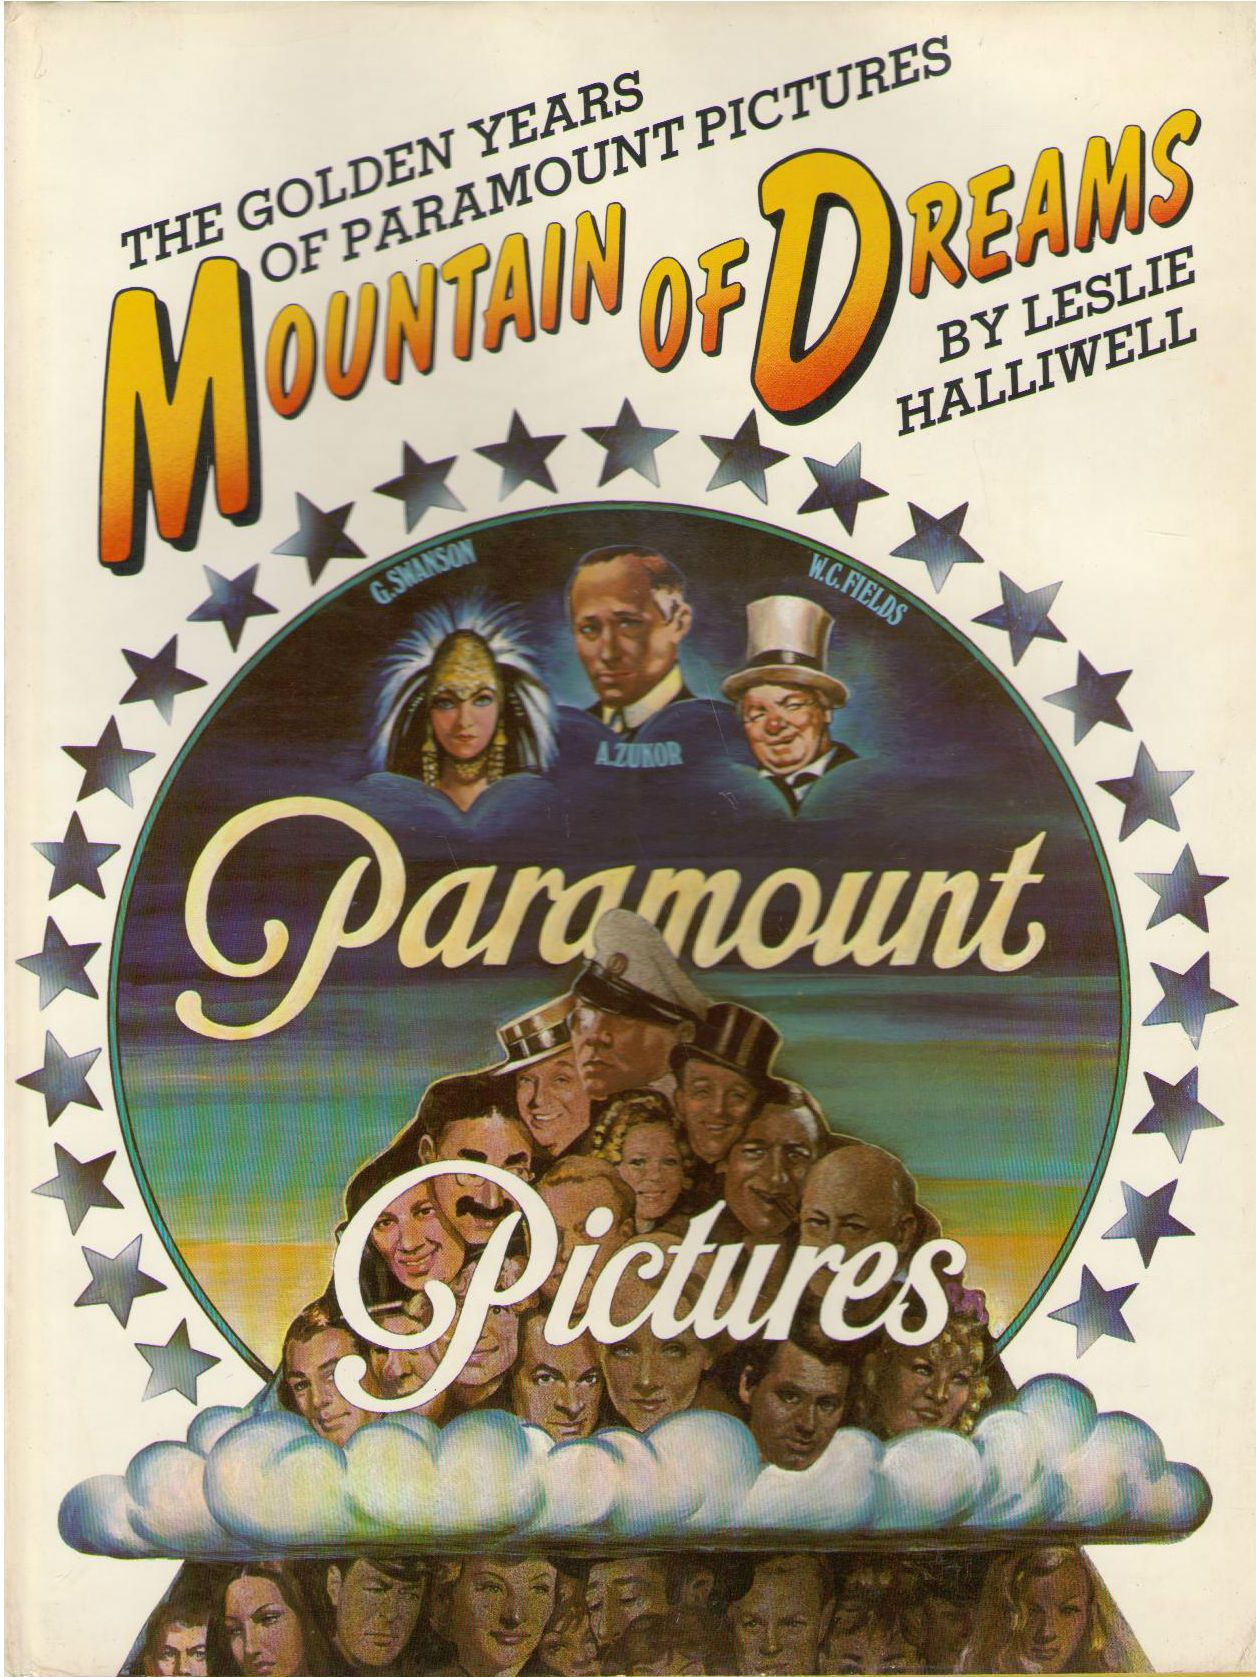 Mountain of dreams: The golden years of Paramount Pictures, Halliwell, Leslie